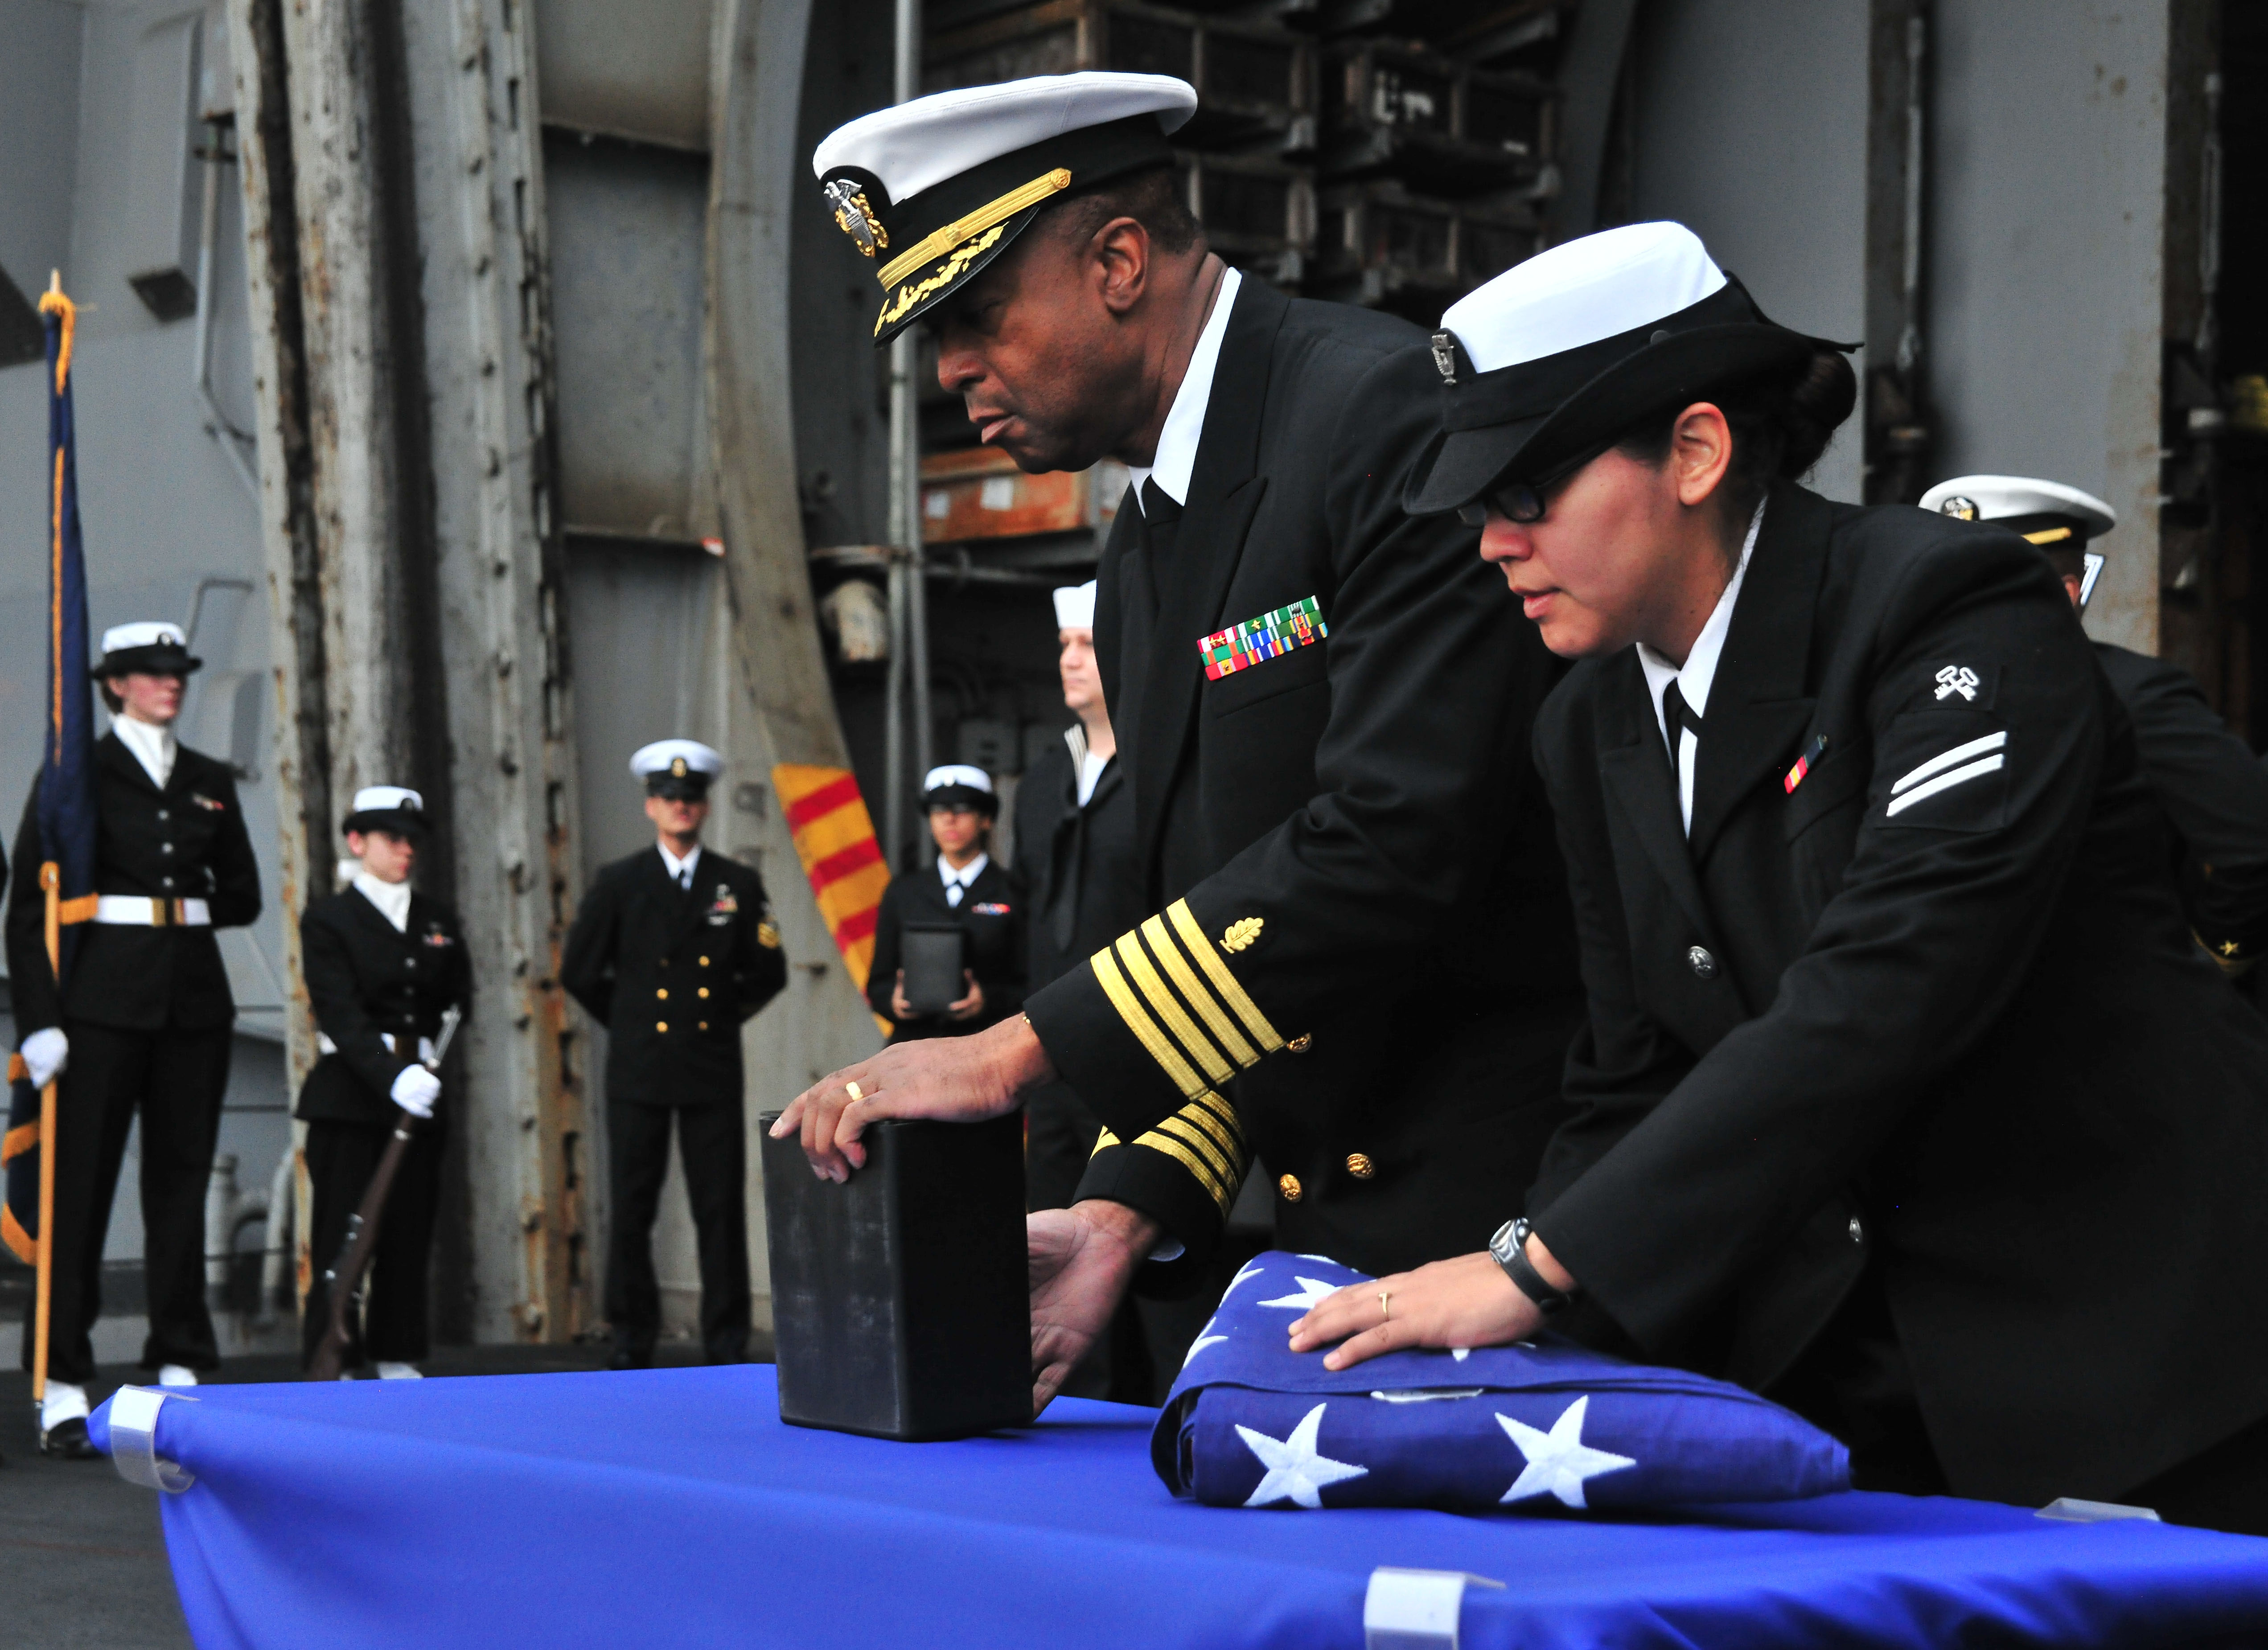 Neil Armstrong Funarul Casket Open - Pics about space